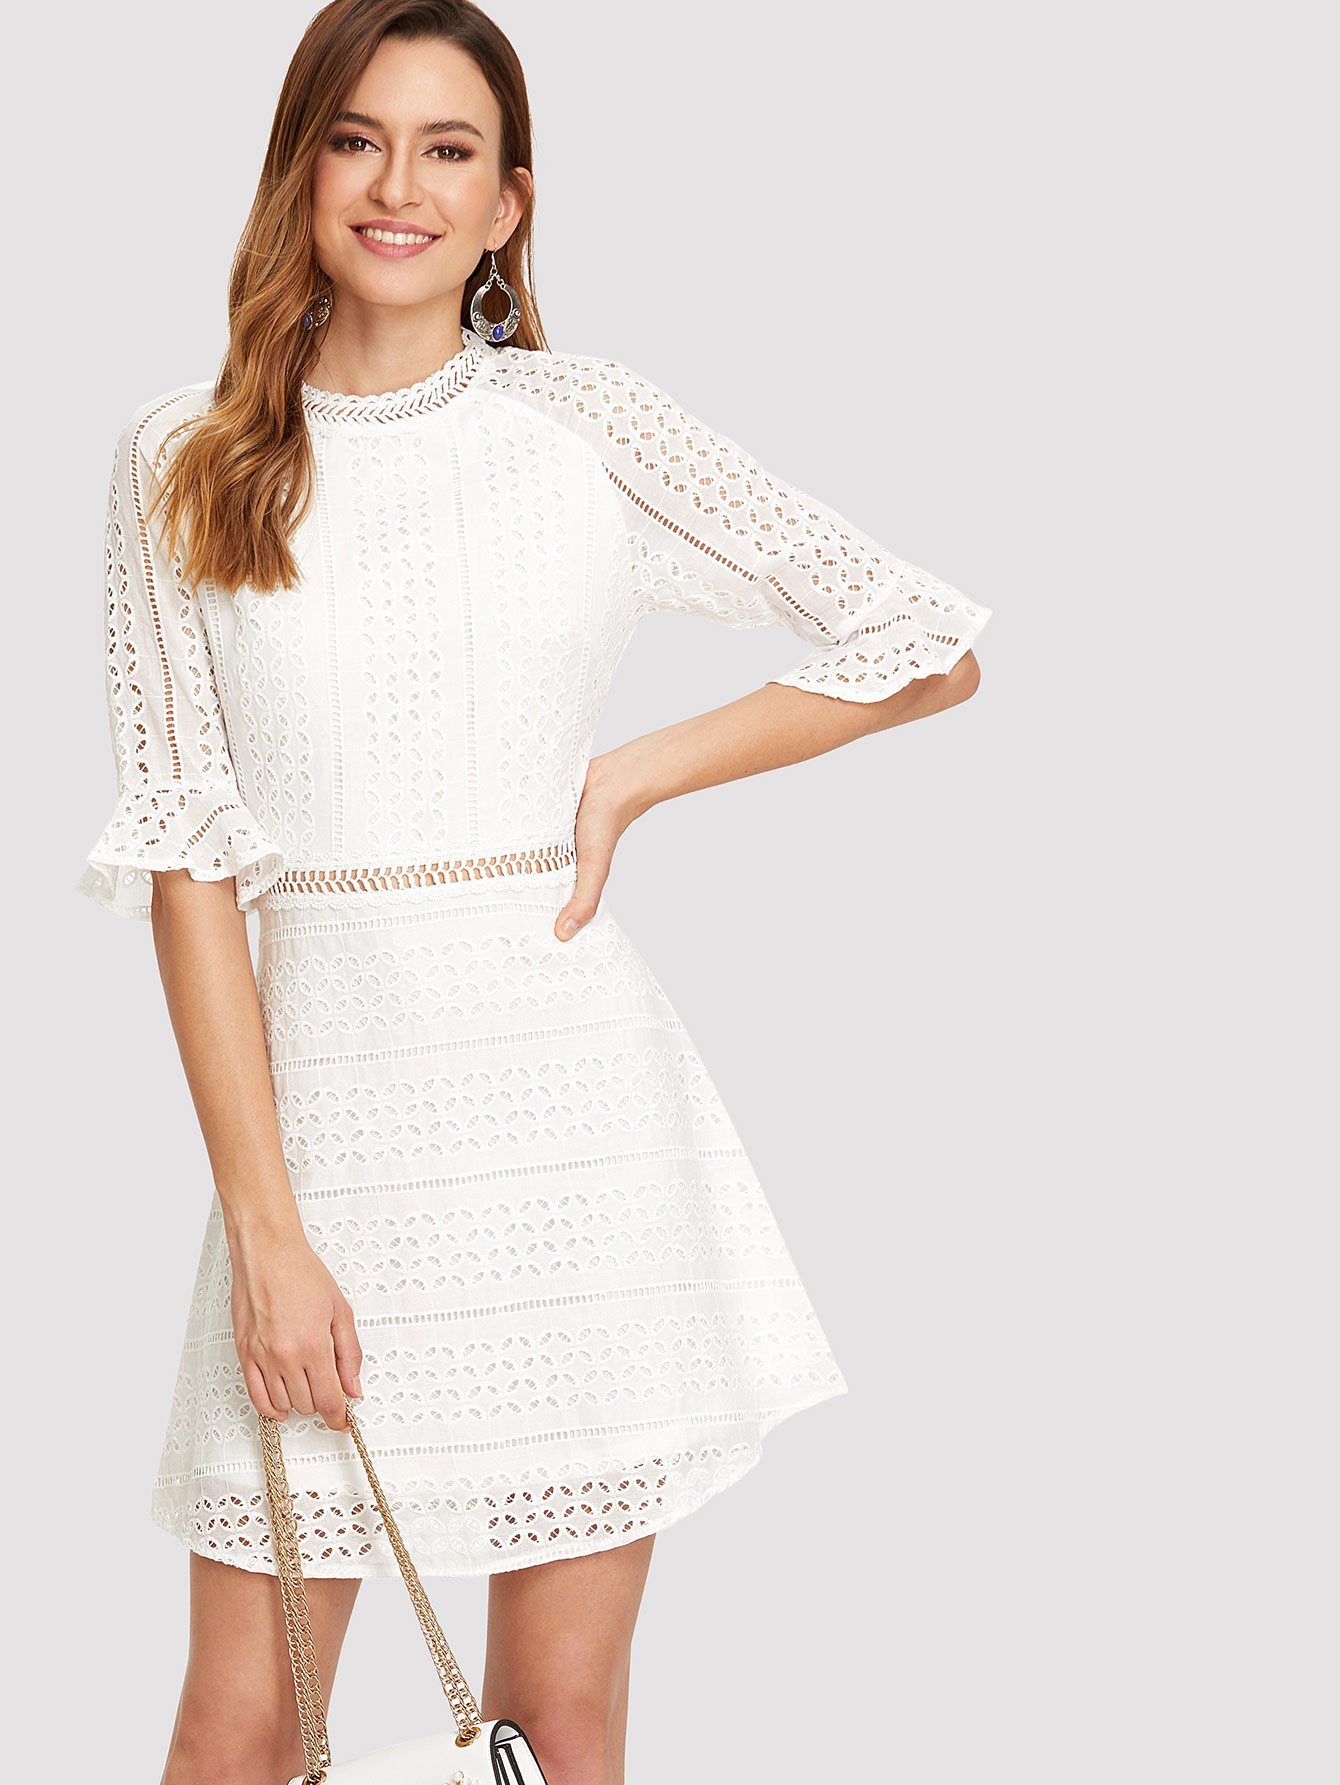 Ruffle Cuff Guipure Lace Overlay Dress guipure lace overlay fit and flare dress